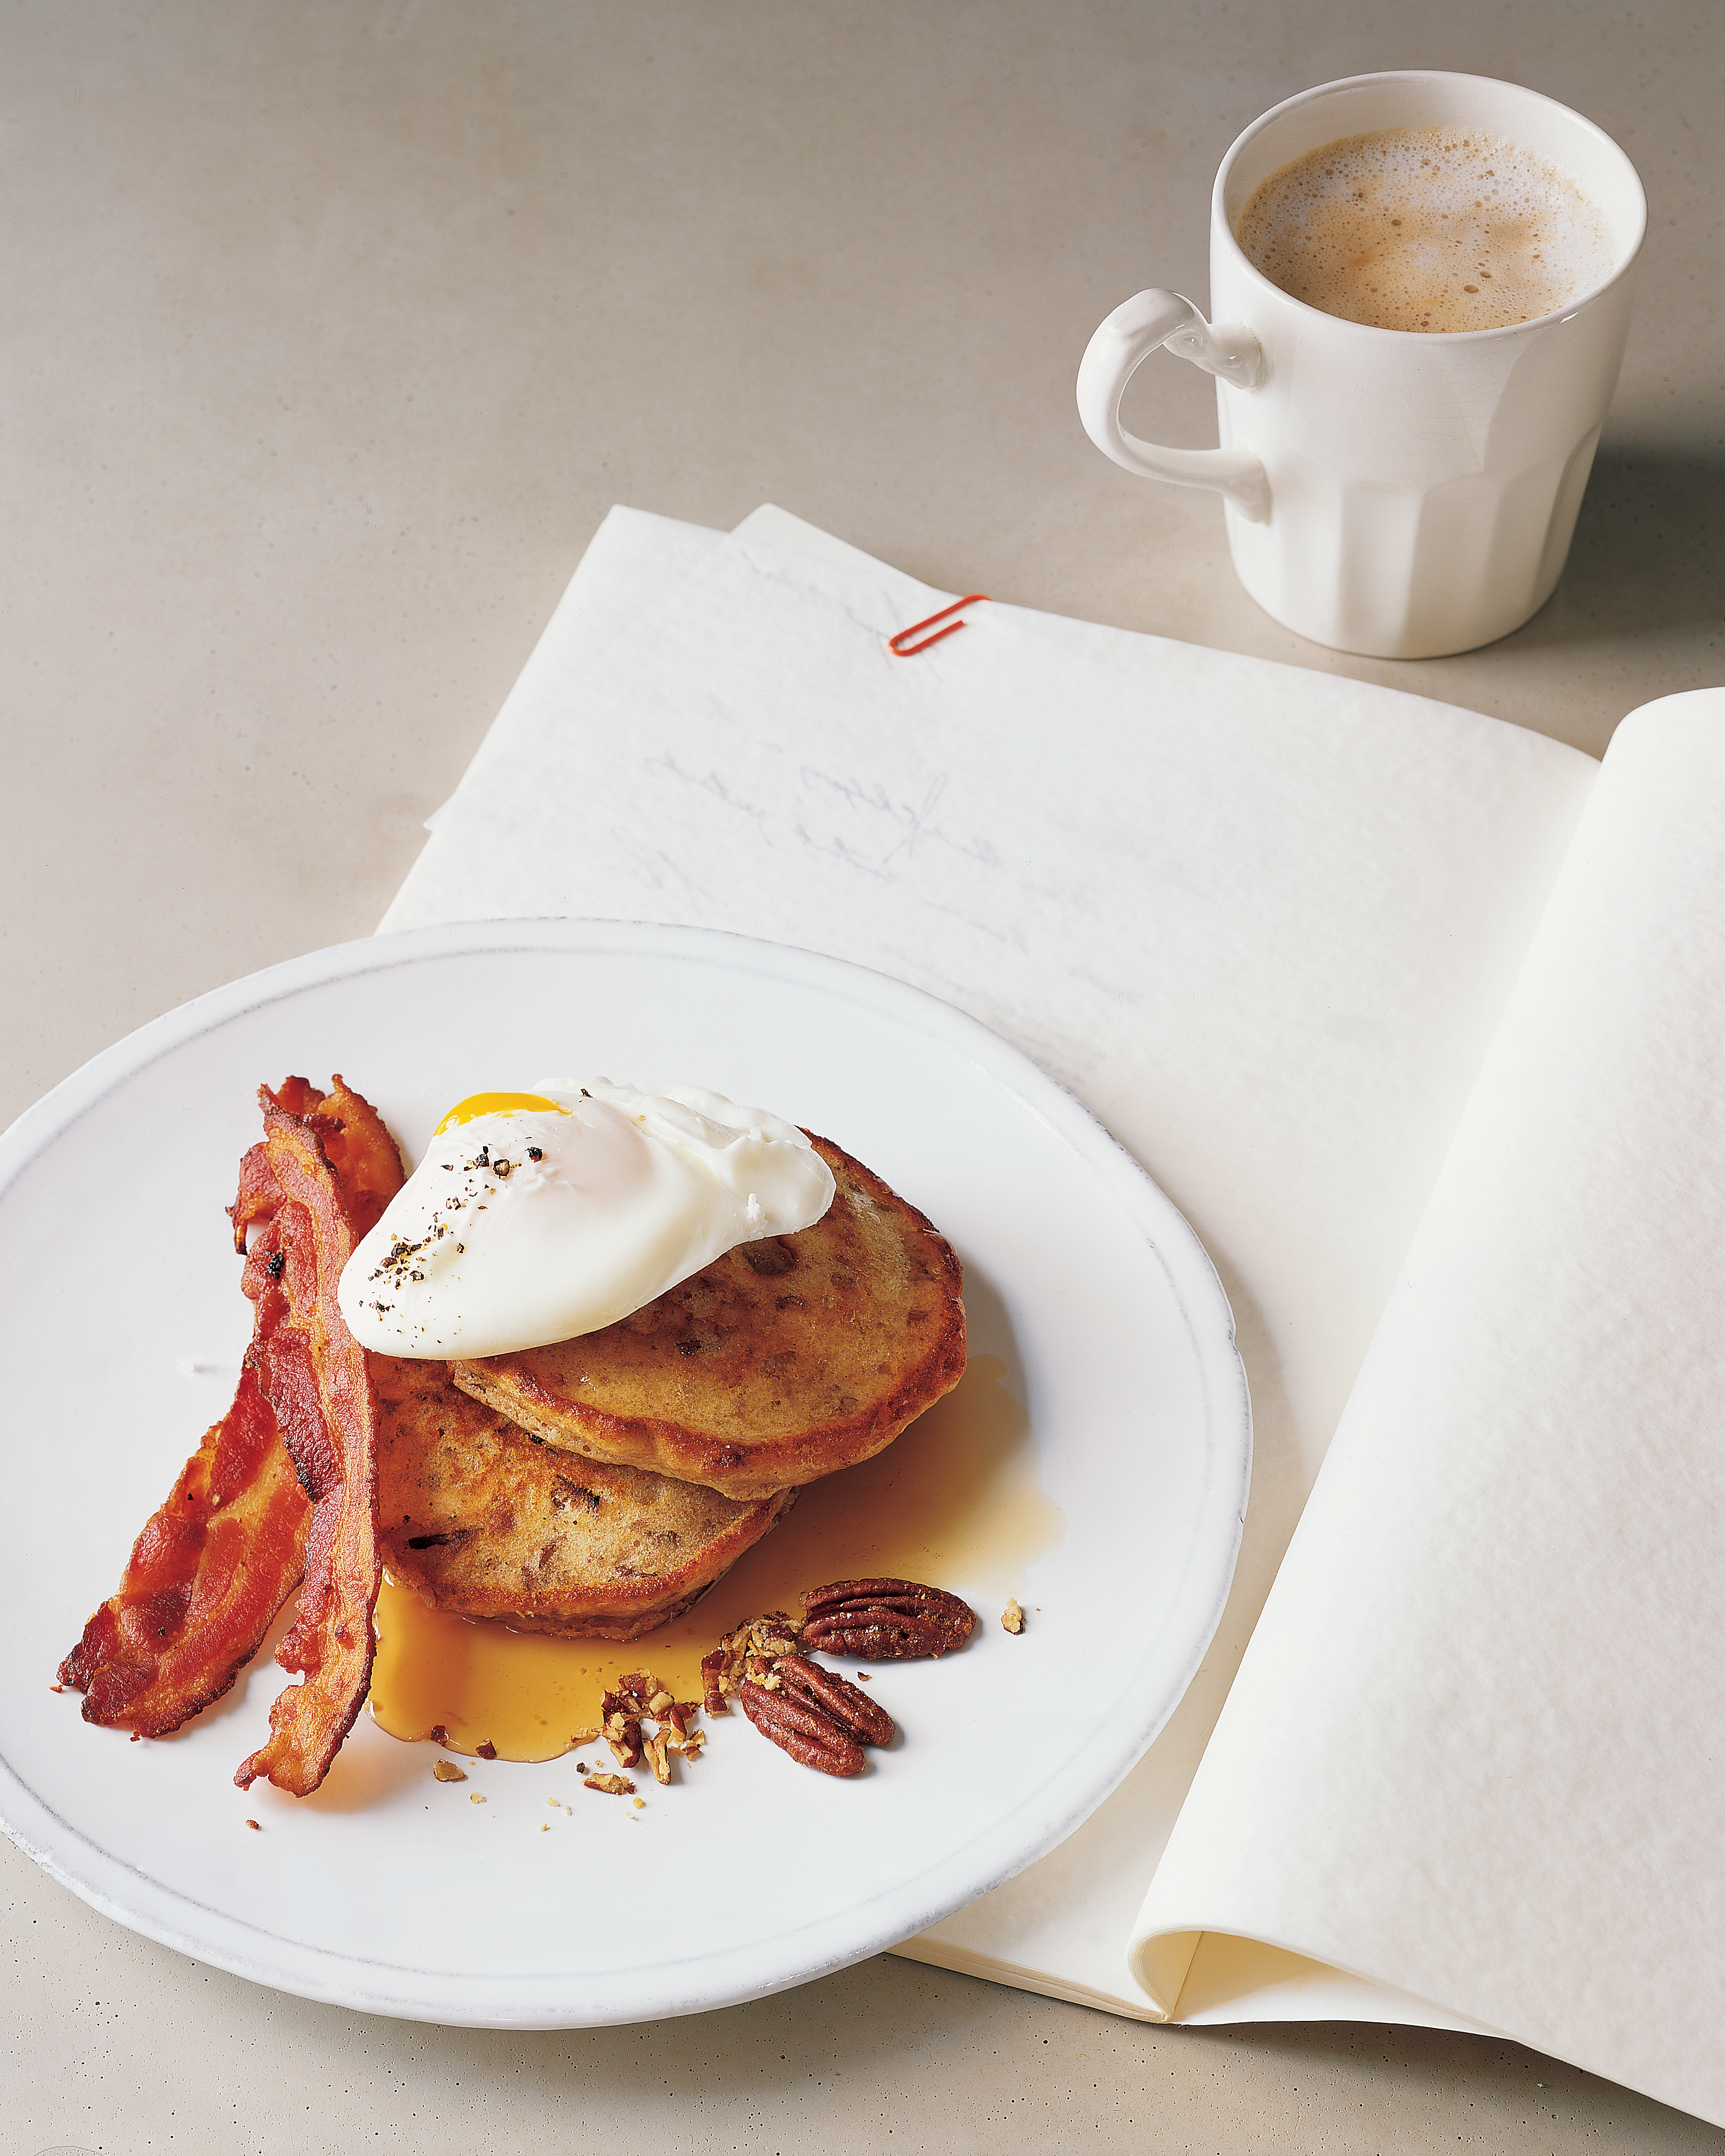 The Hungry Bear: Poached Eggs with Bacon and Pancakes